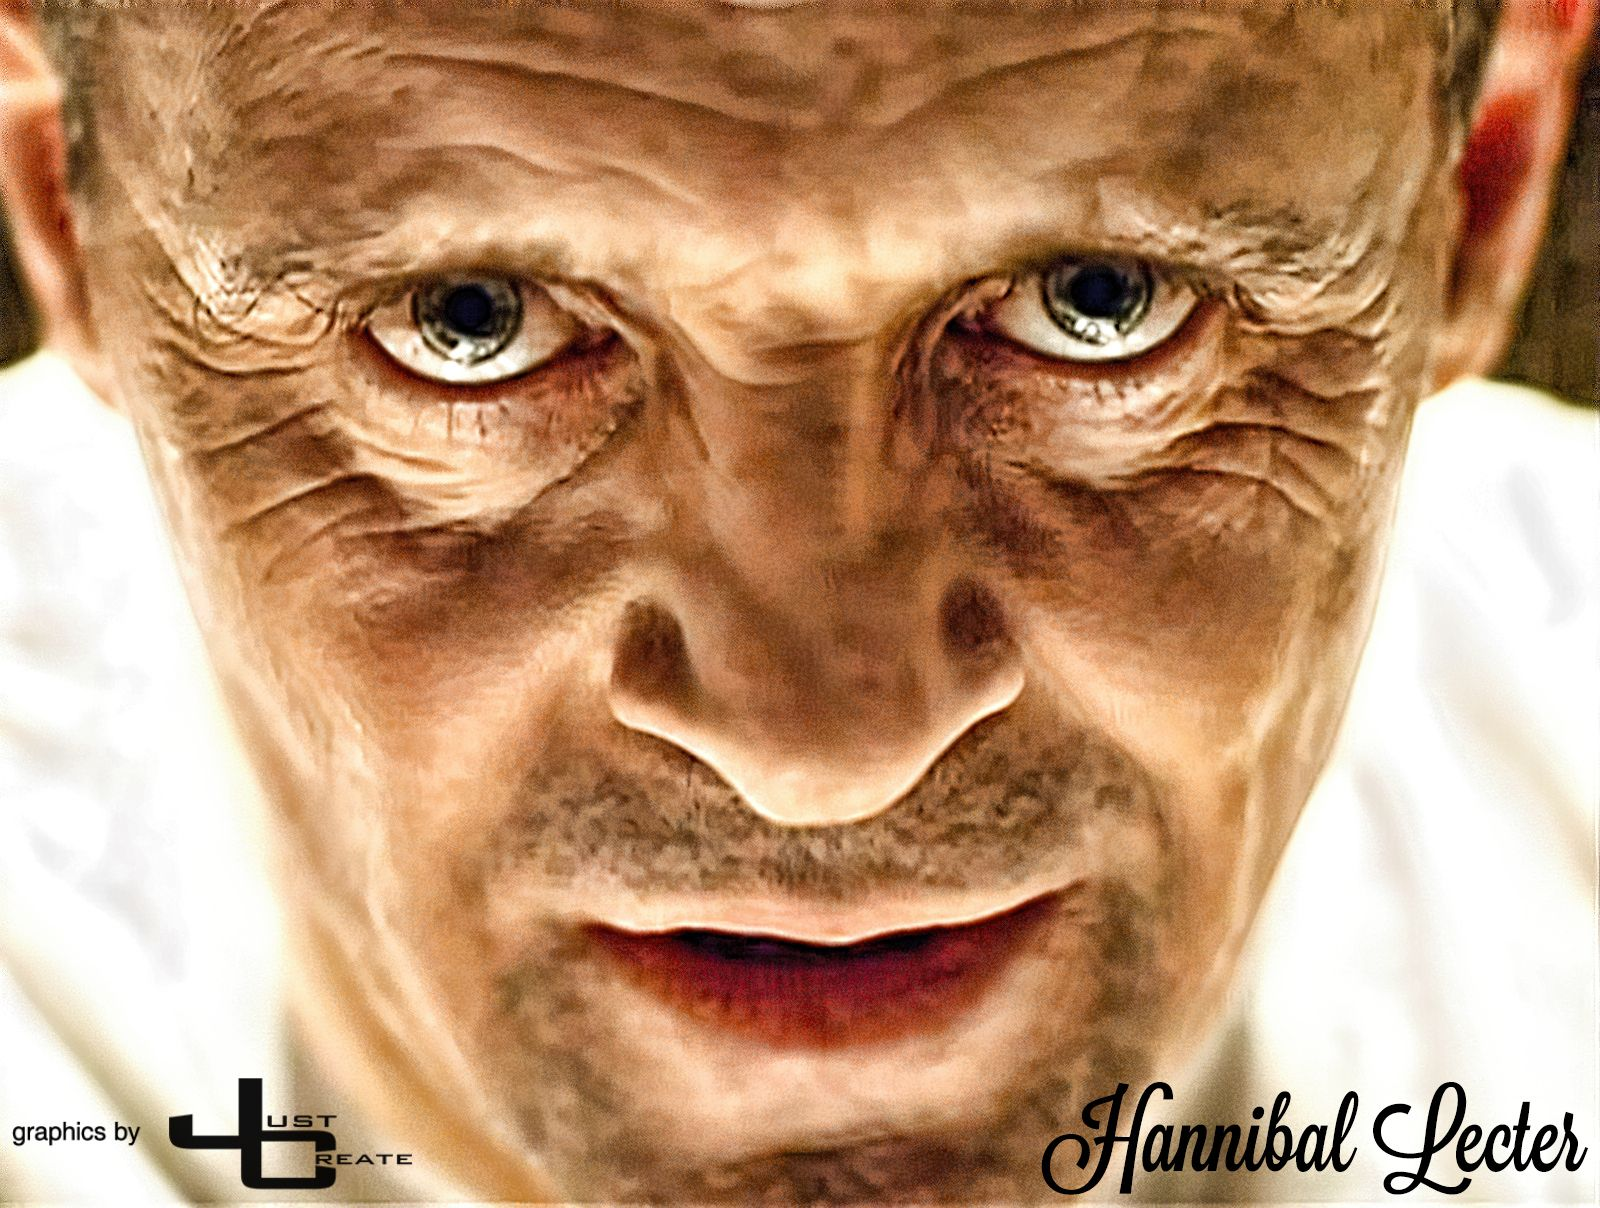 The Silence of the Lambs  - Hannibal Lecter  (Anthony Hopkins)   graphics by justcreate